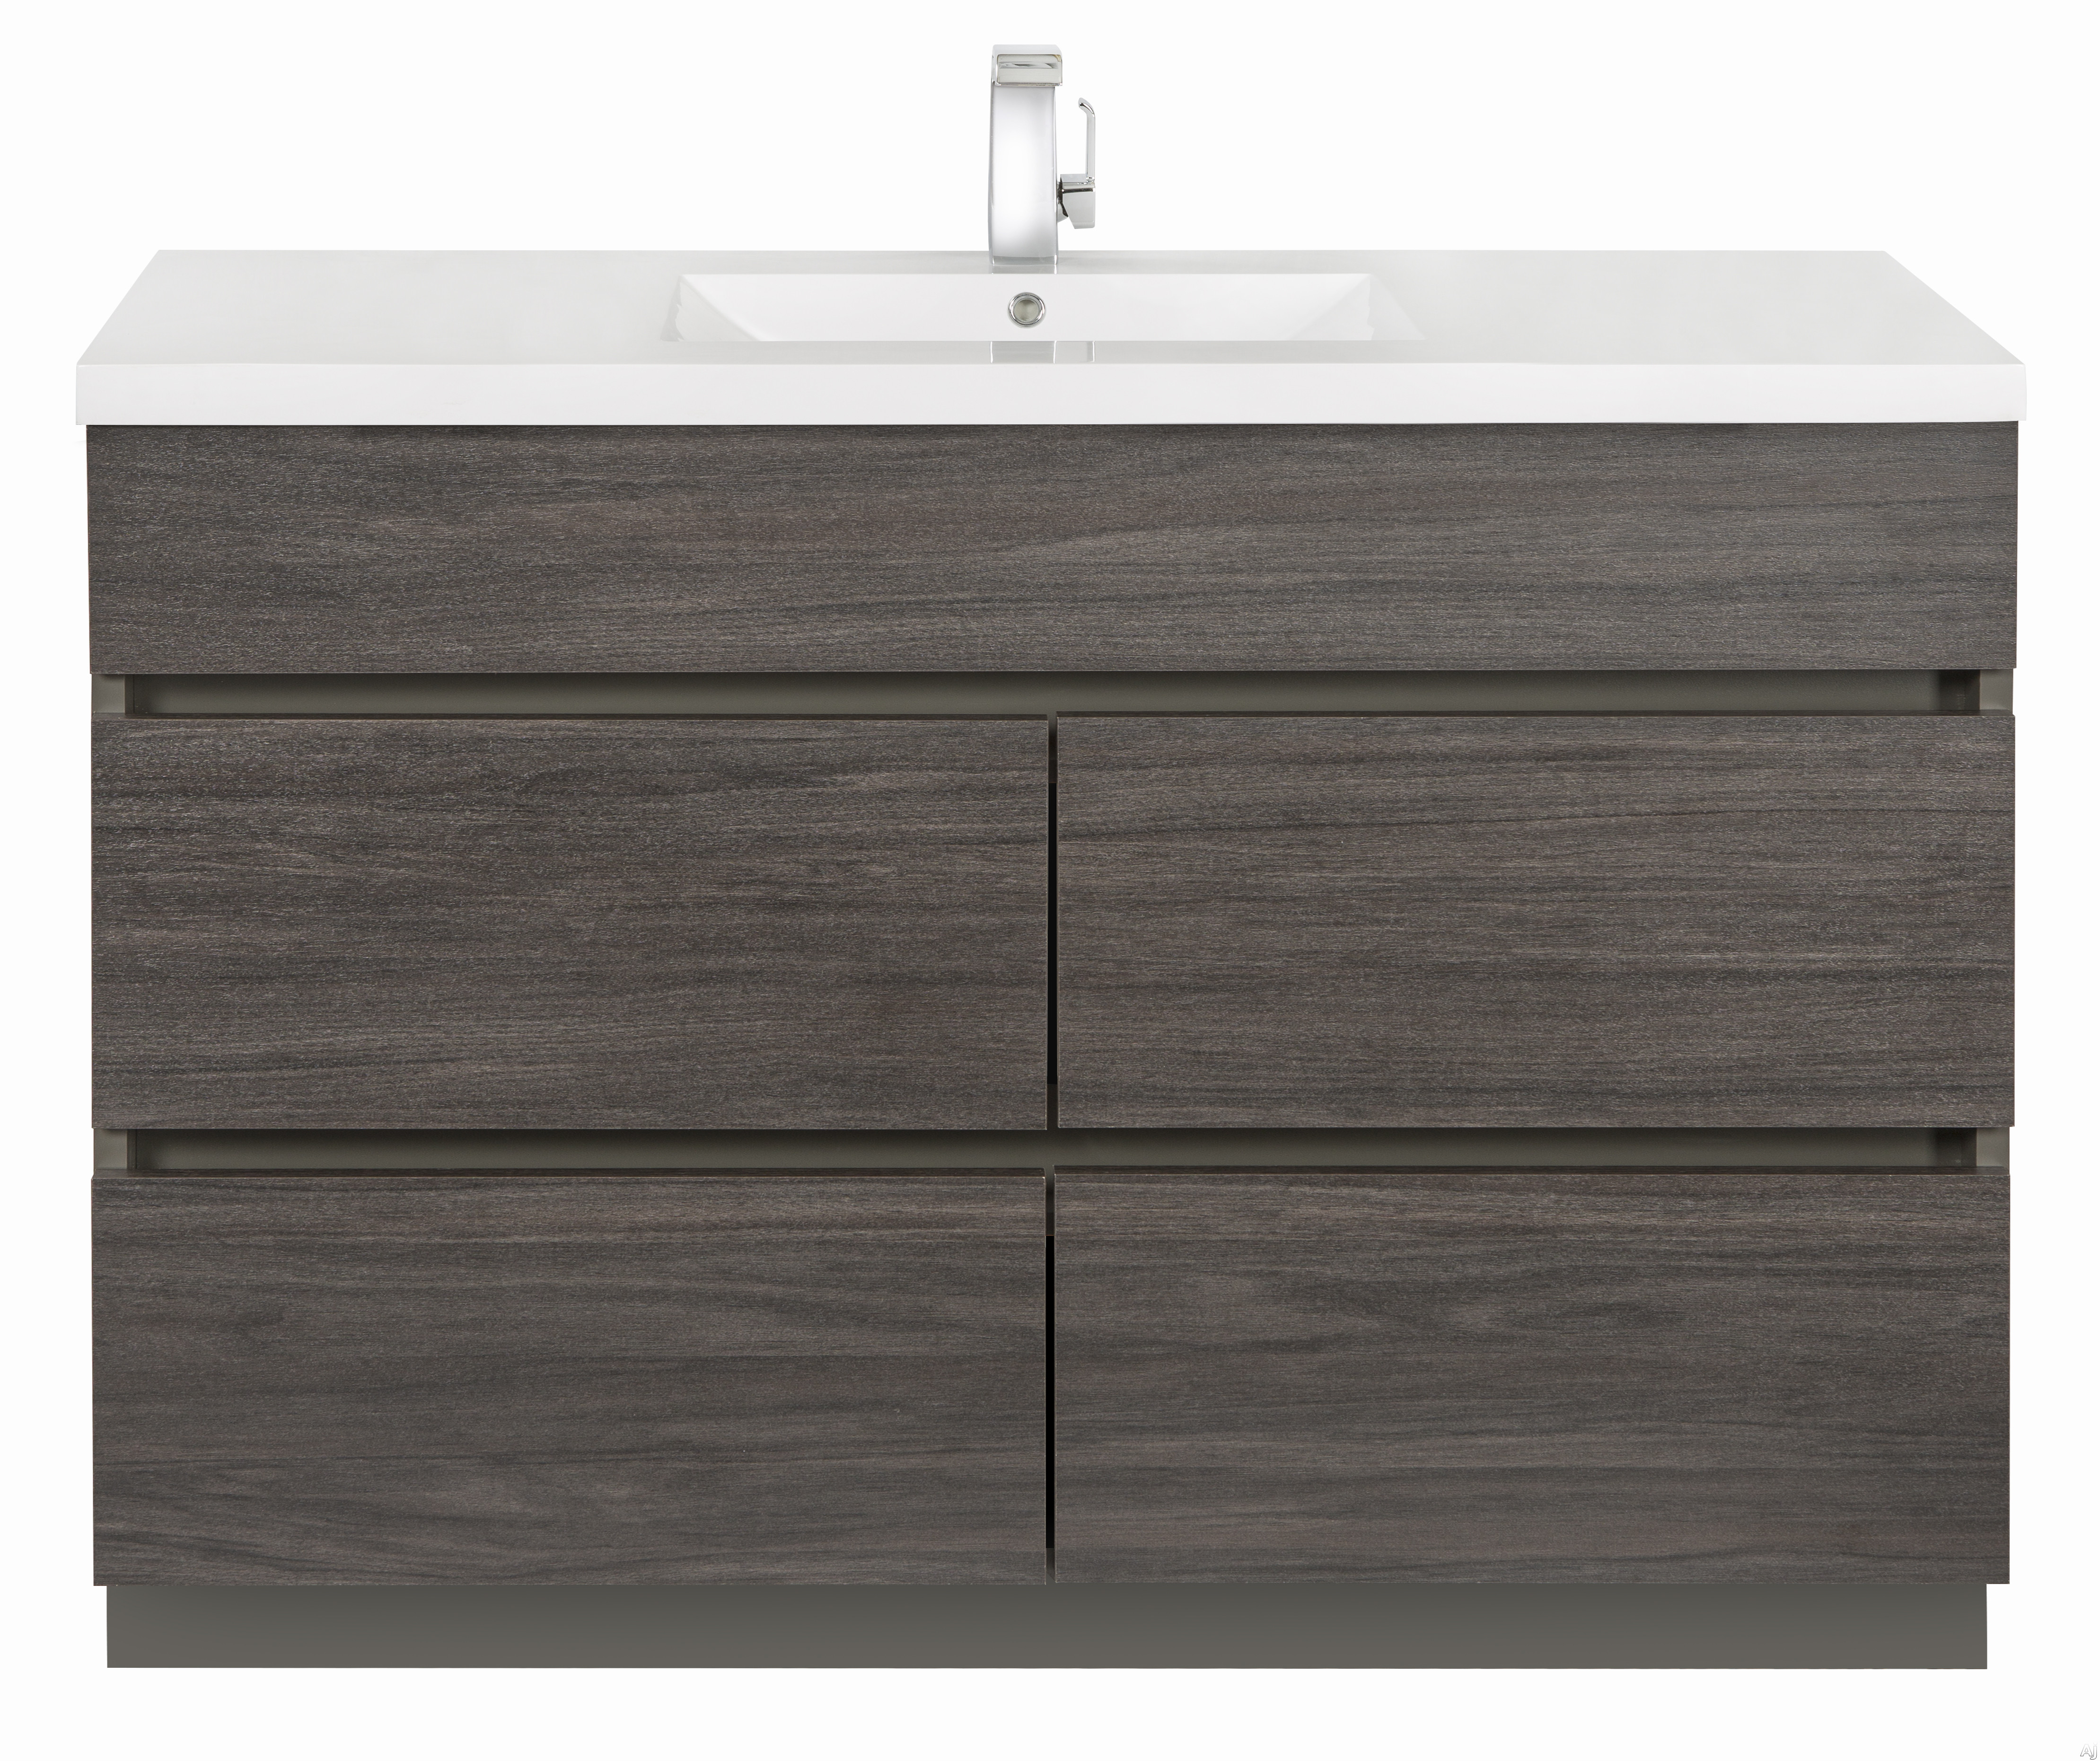 Picture of Cutler Kitchen  Bath Boardwalk BWKA48SB 48 Inch Single Bowl Vanity with Acrylic Top with Overflow 4 Soft Close Drawers Comfort Height and European Hardware